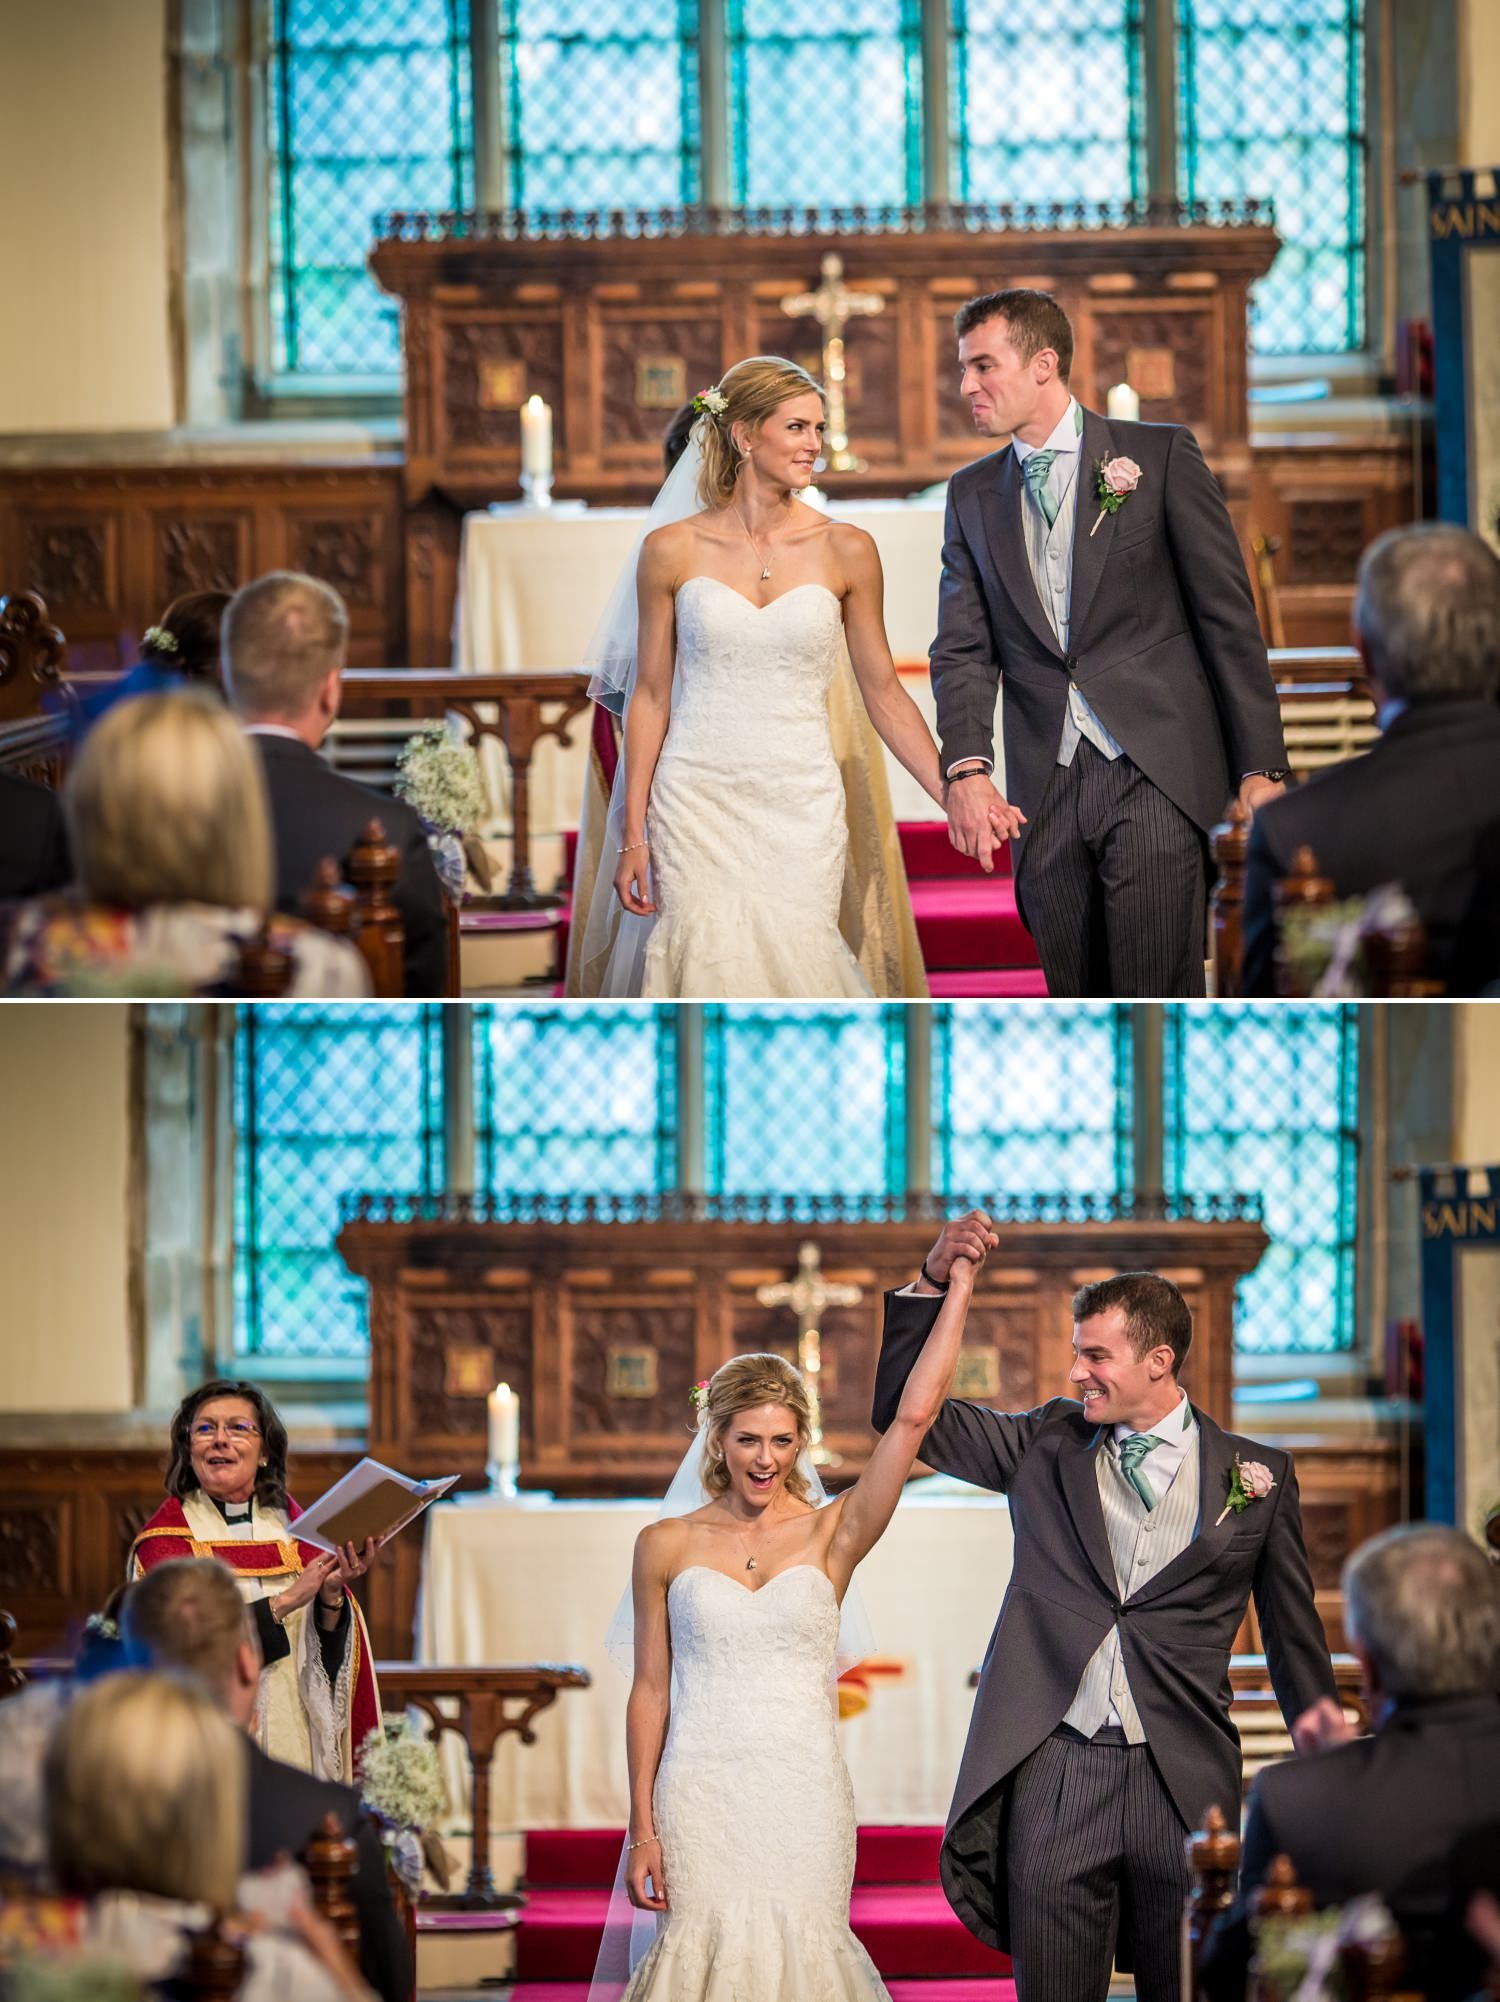 Pentre Mawr Country House Wedding Photograph of a couple walking down the aisle